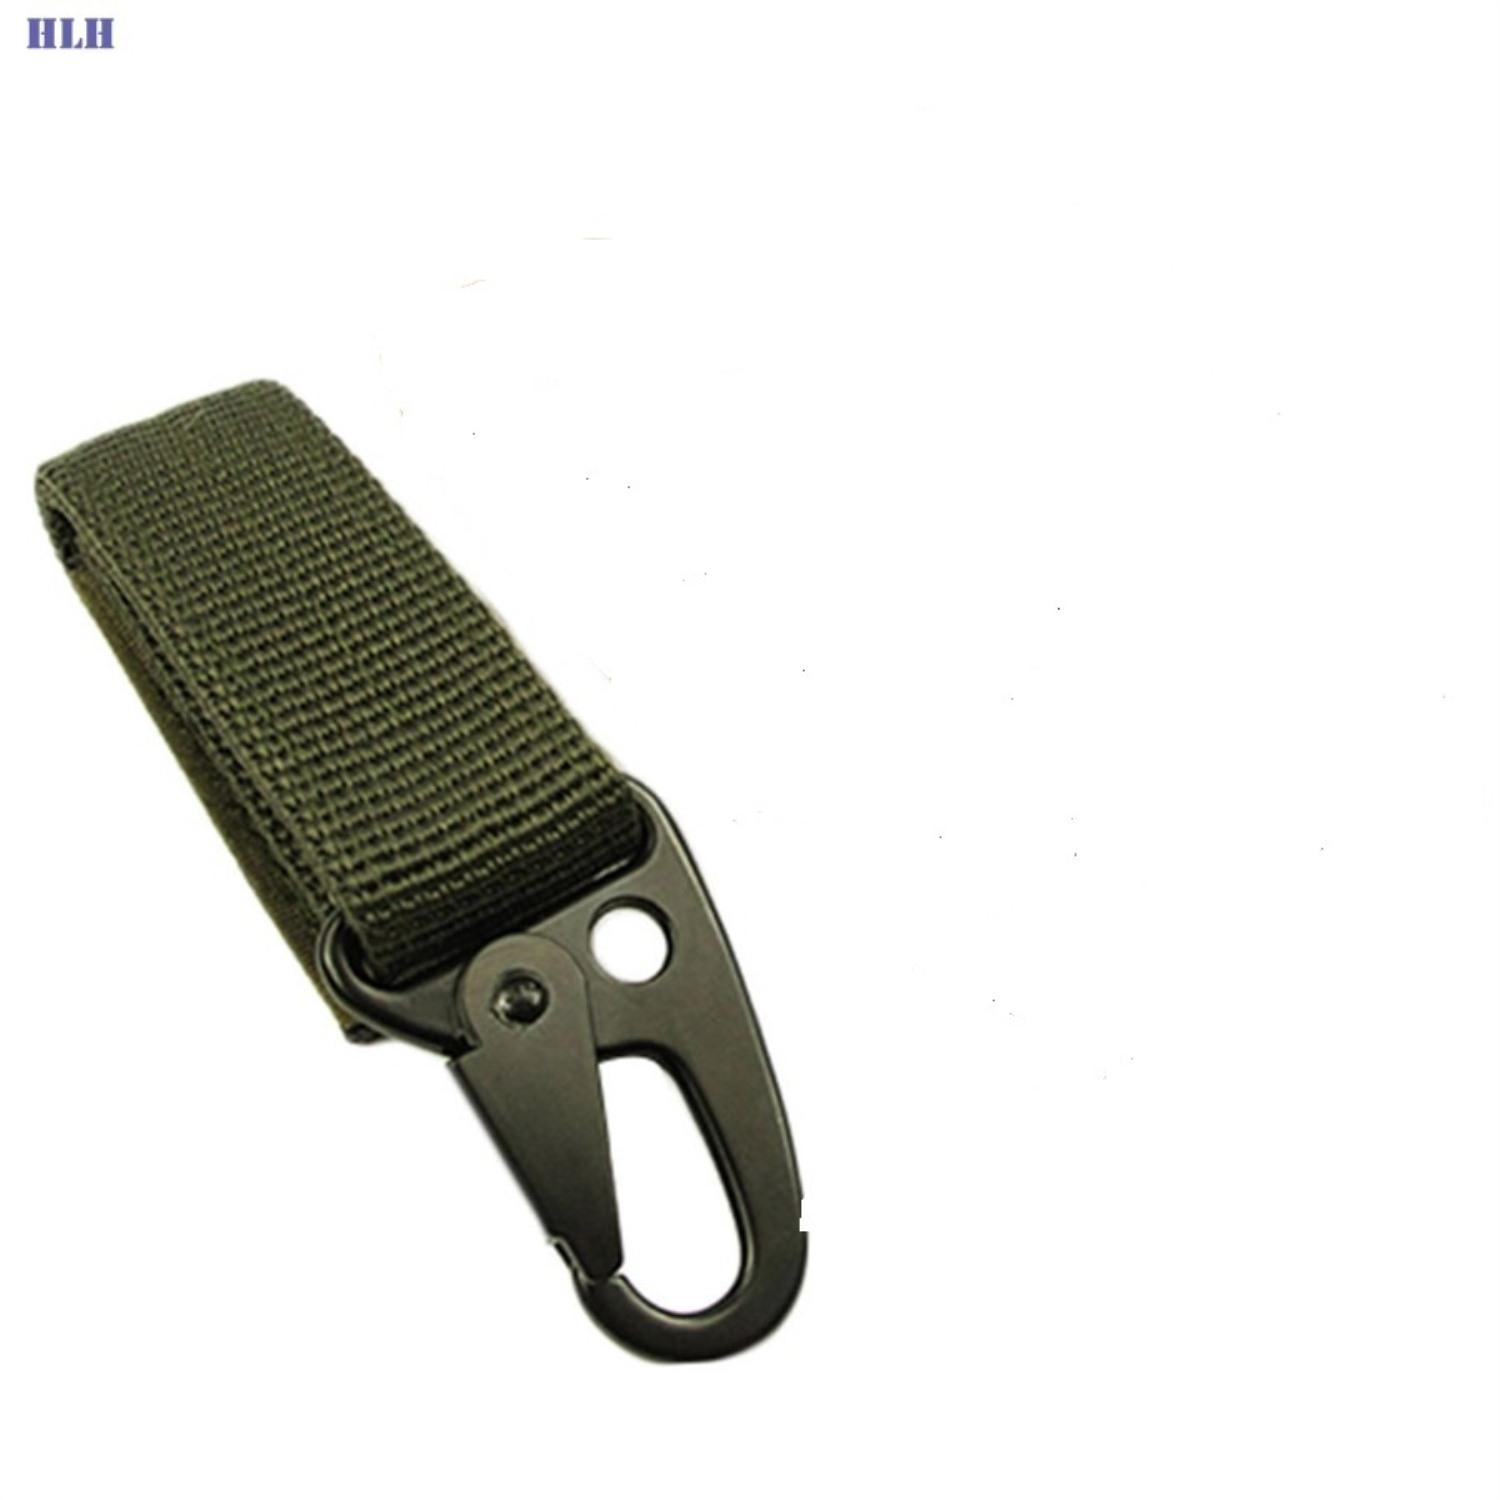 Outdoor Military Hiking Belt Tactical Molle Key Chain Green